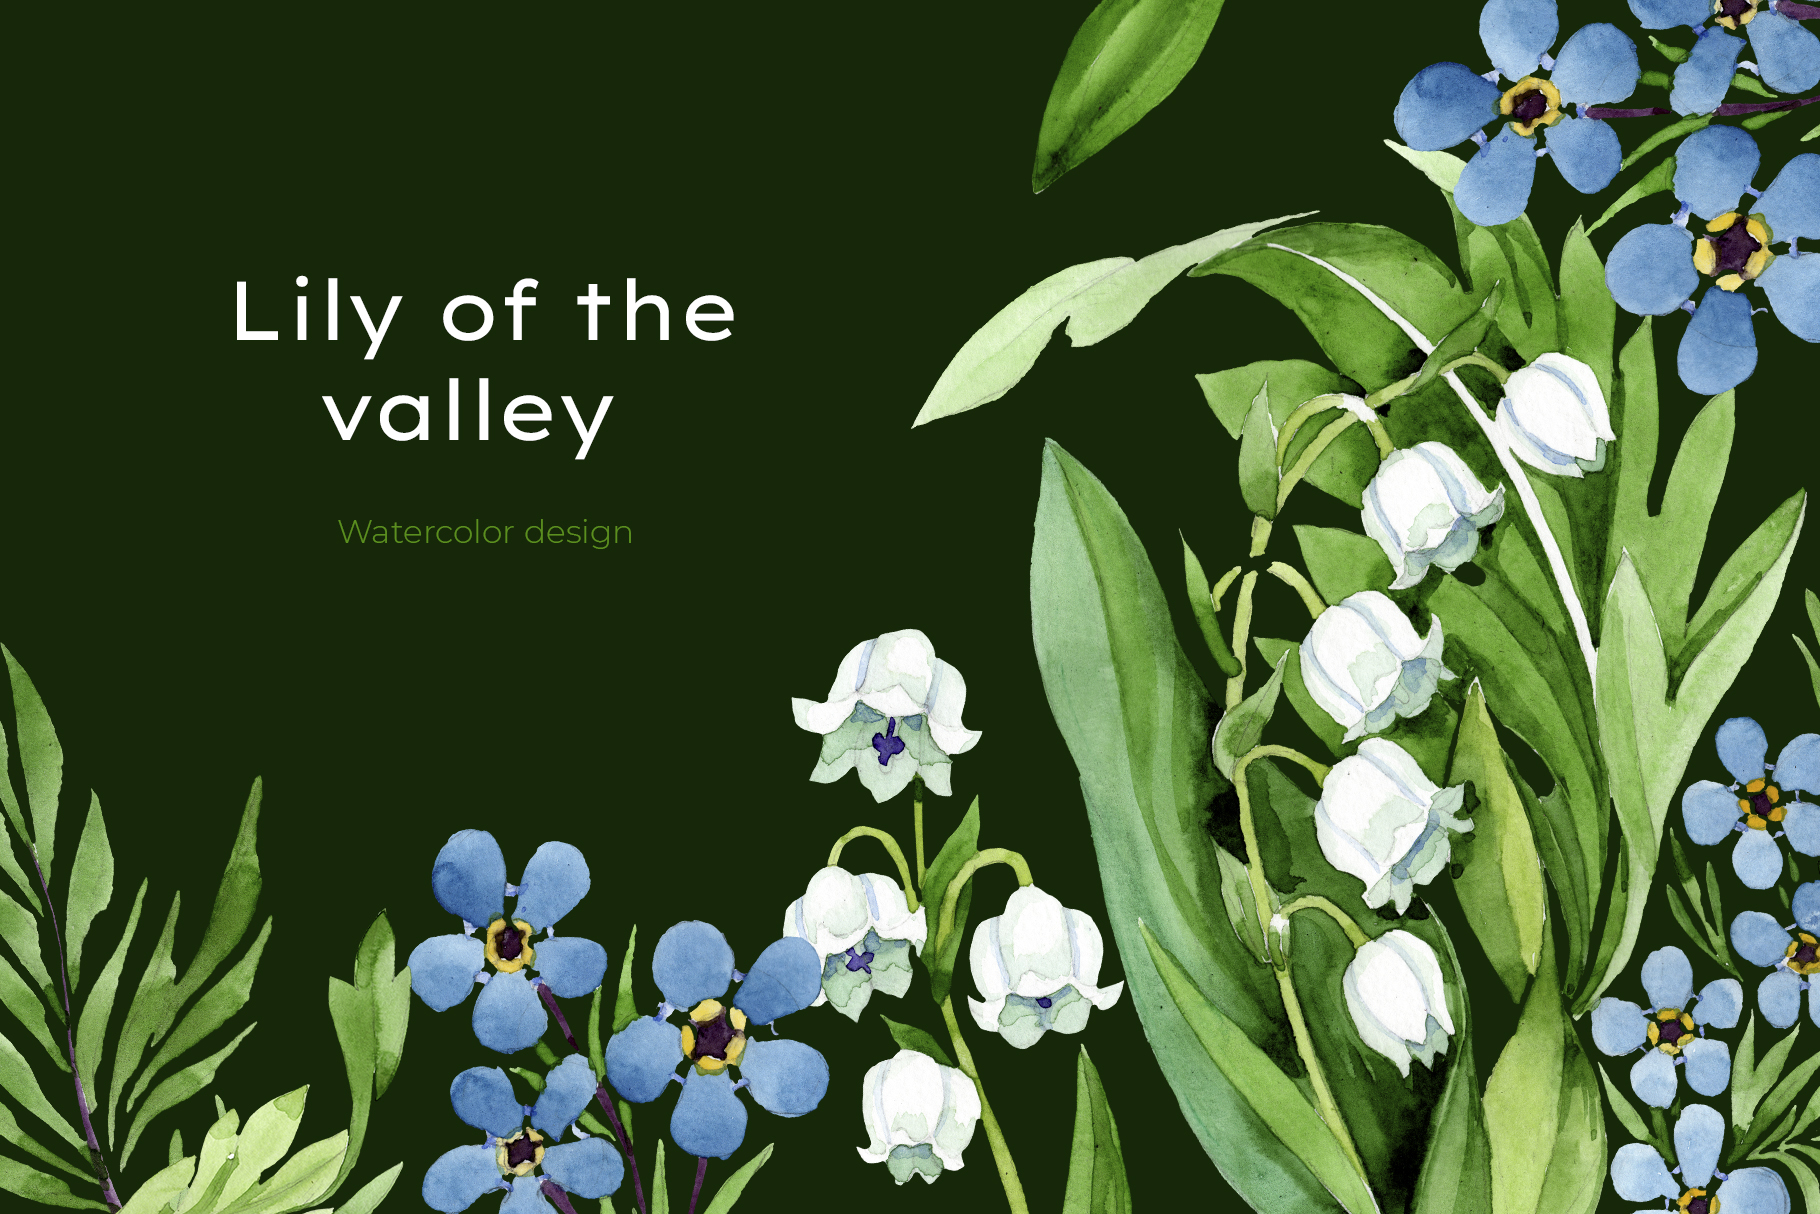 lily of the valley watercolor and forget-me-nots png example image 8